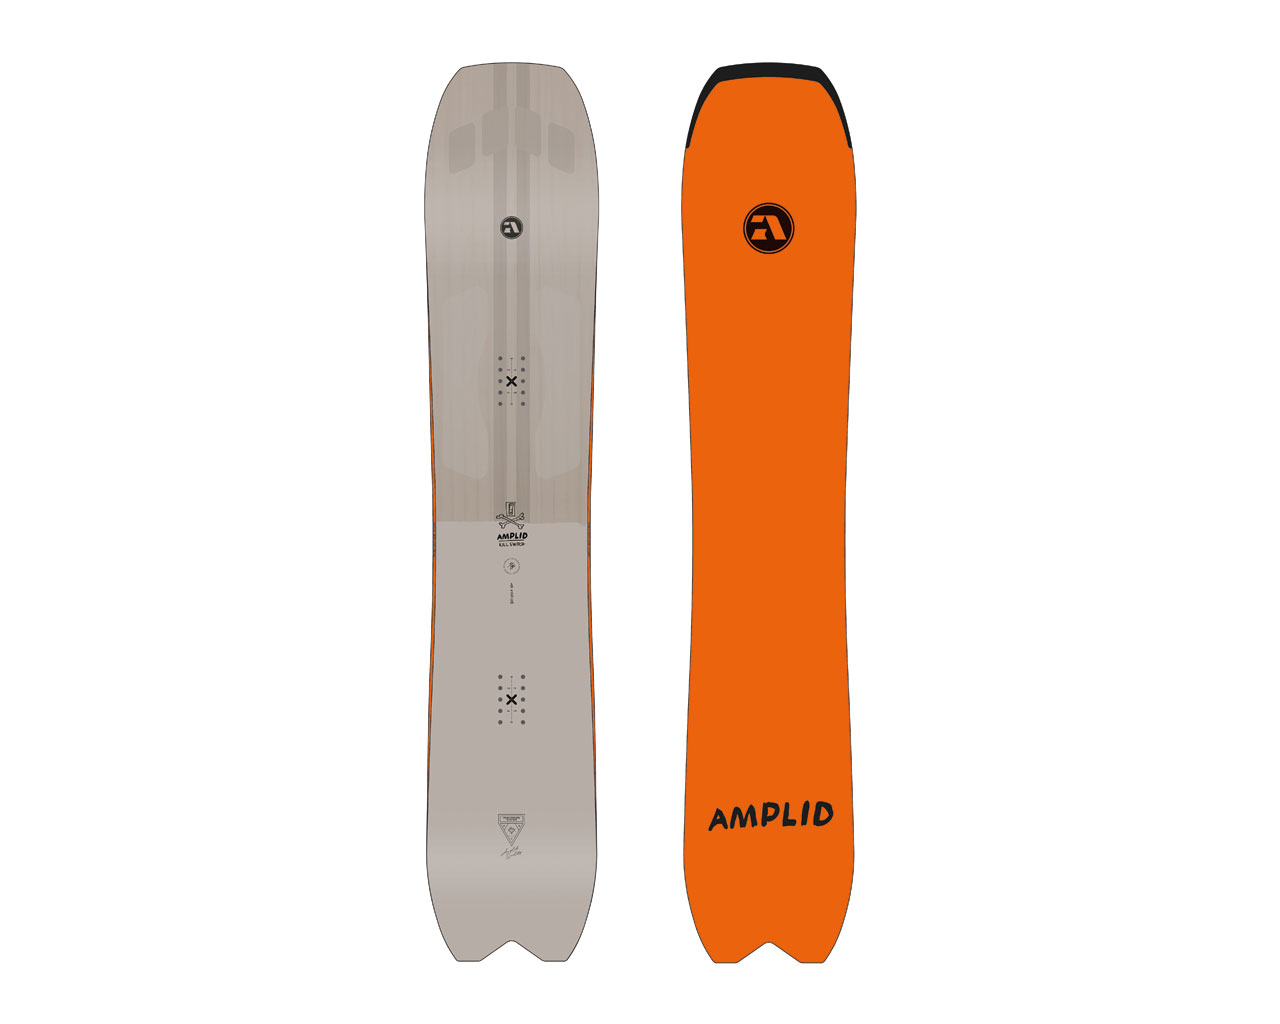 Amplid FW20/21 Snowboard Preview